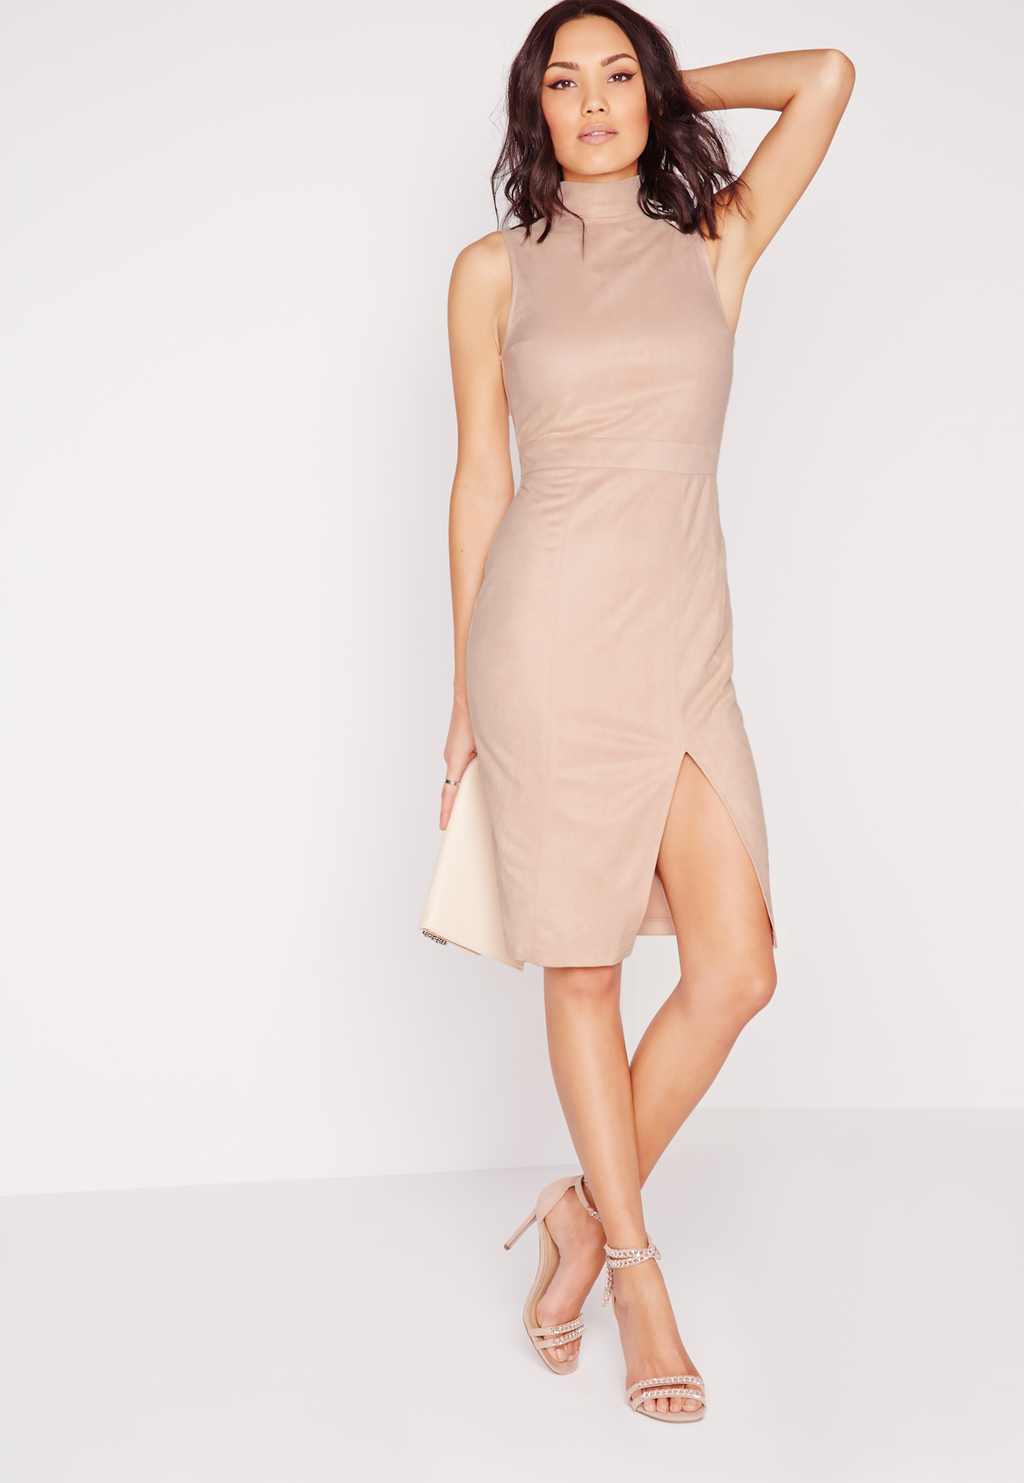 Faux Suede High Neck Midi Dress Nude, Beige - style: shift; fit: tailored/fitted; pattern: plain; sleeve style: sleeveless; neckline: high neck; predominant colour: nude; occasions: evening; length: on the knee; fibres: polyester/polyamide - 100%; sleeve length: sleeveless; pattern type: fabric; texture group: suede; season: s/s 2016; wardrobe: event